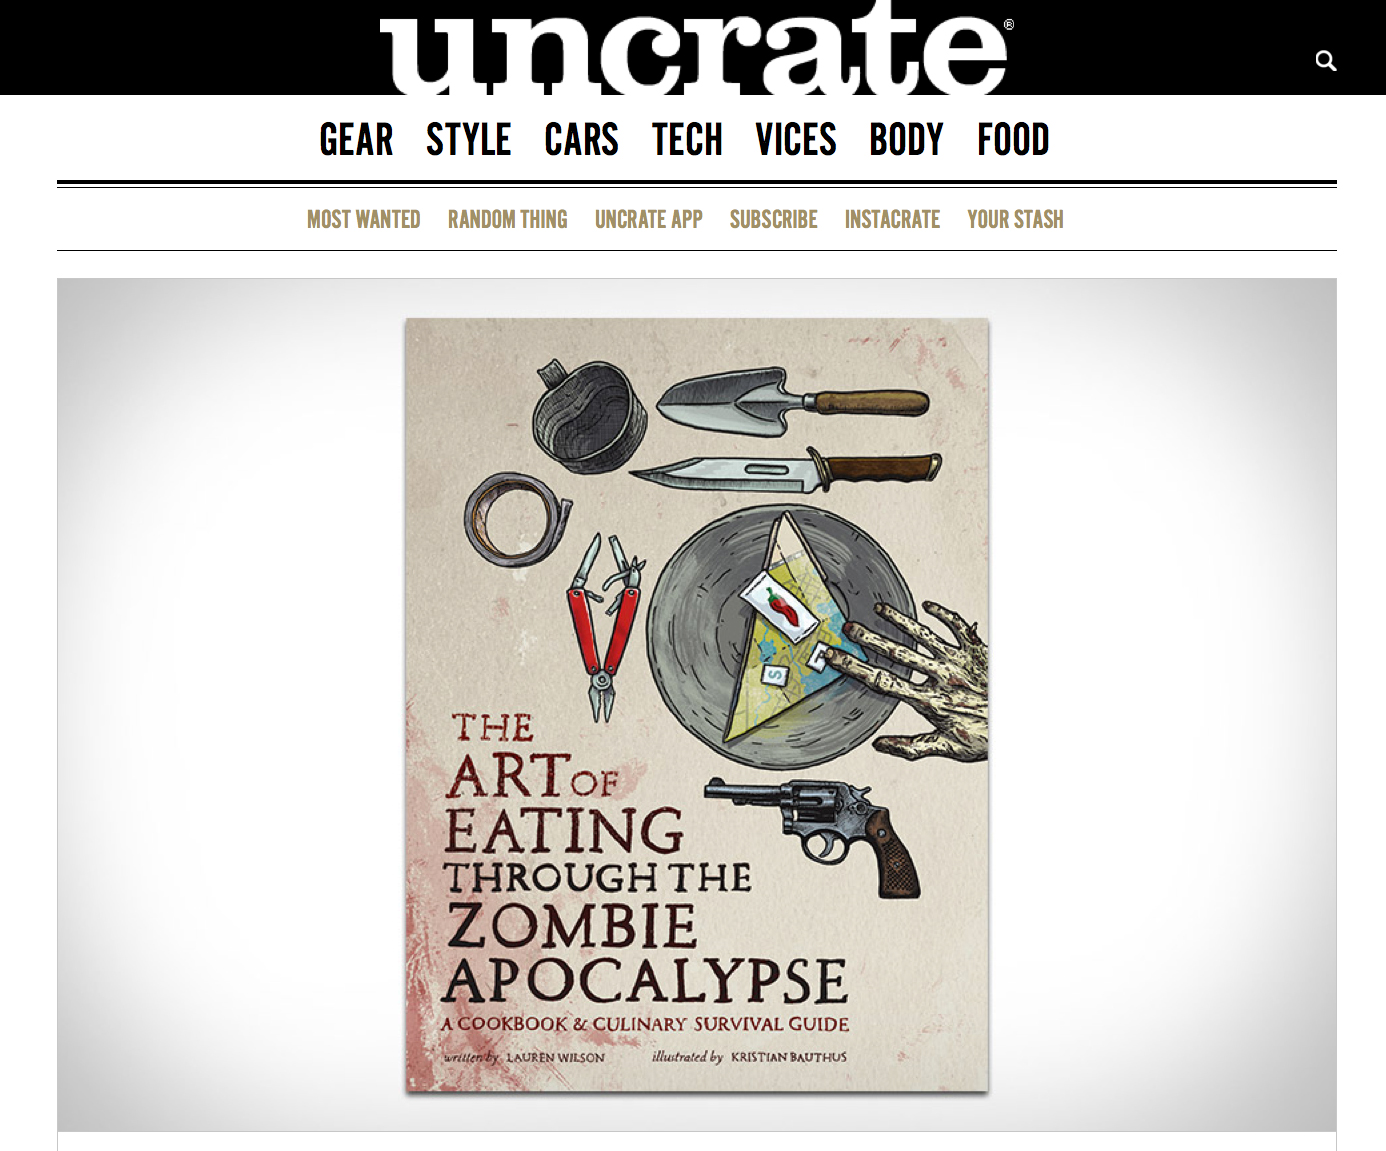 You can buy The Art of Eating Through the Zombie Apocalypse on Uncrate.com